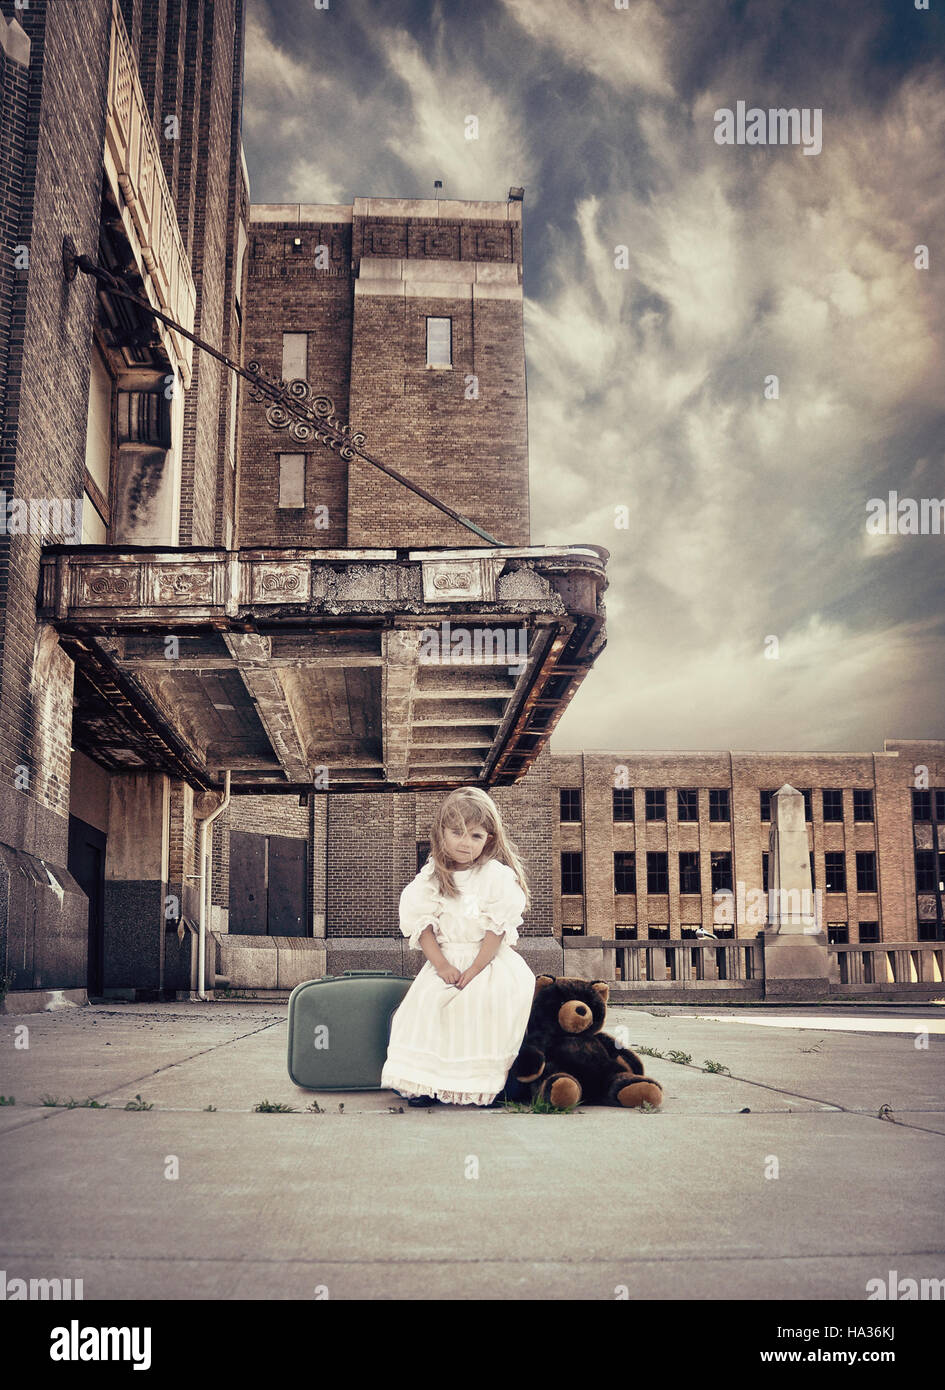 A little child is sitting on a travel suitcase by an old building with teddy bear next to her for a strength or Stock Photo